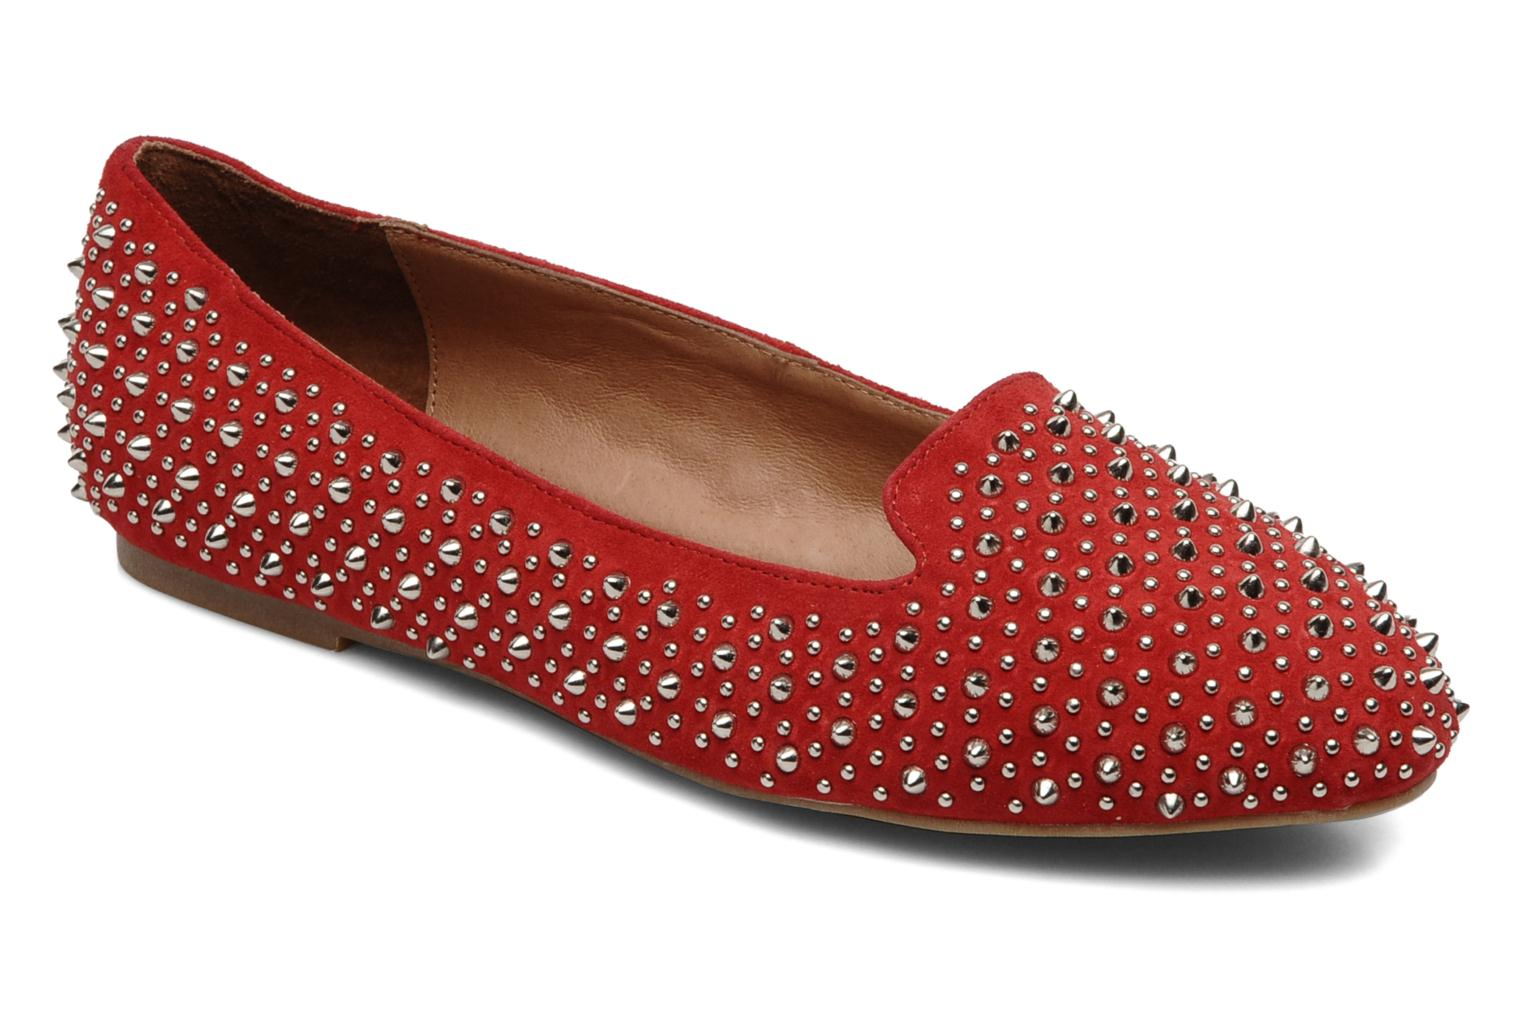 mocassins-martini-sp-by-jeffrey-campbell